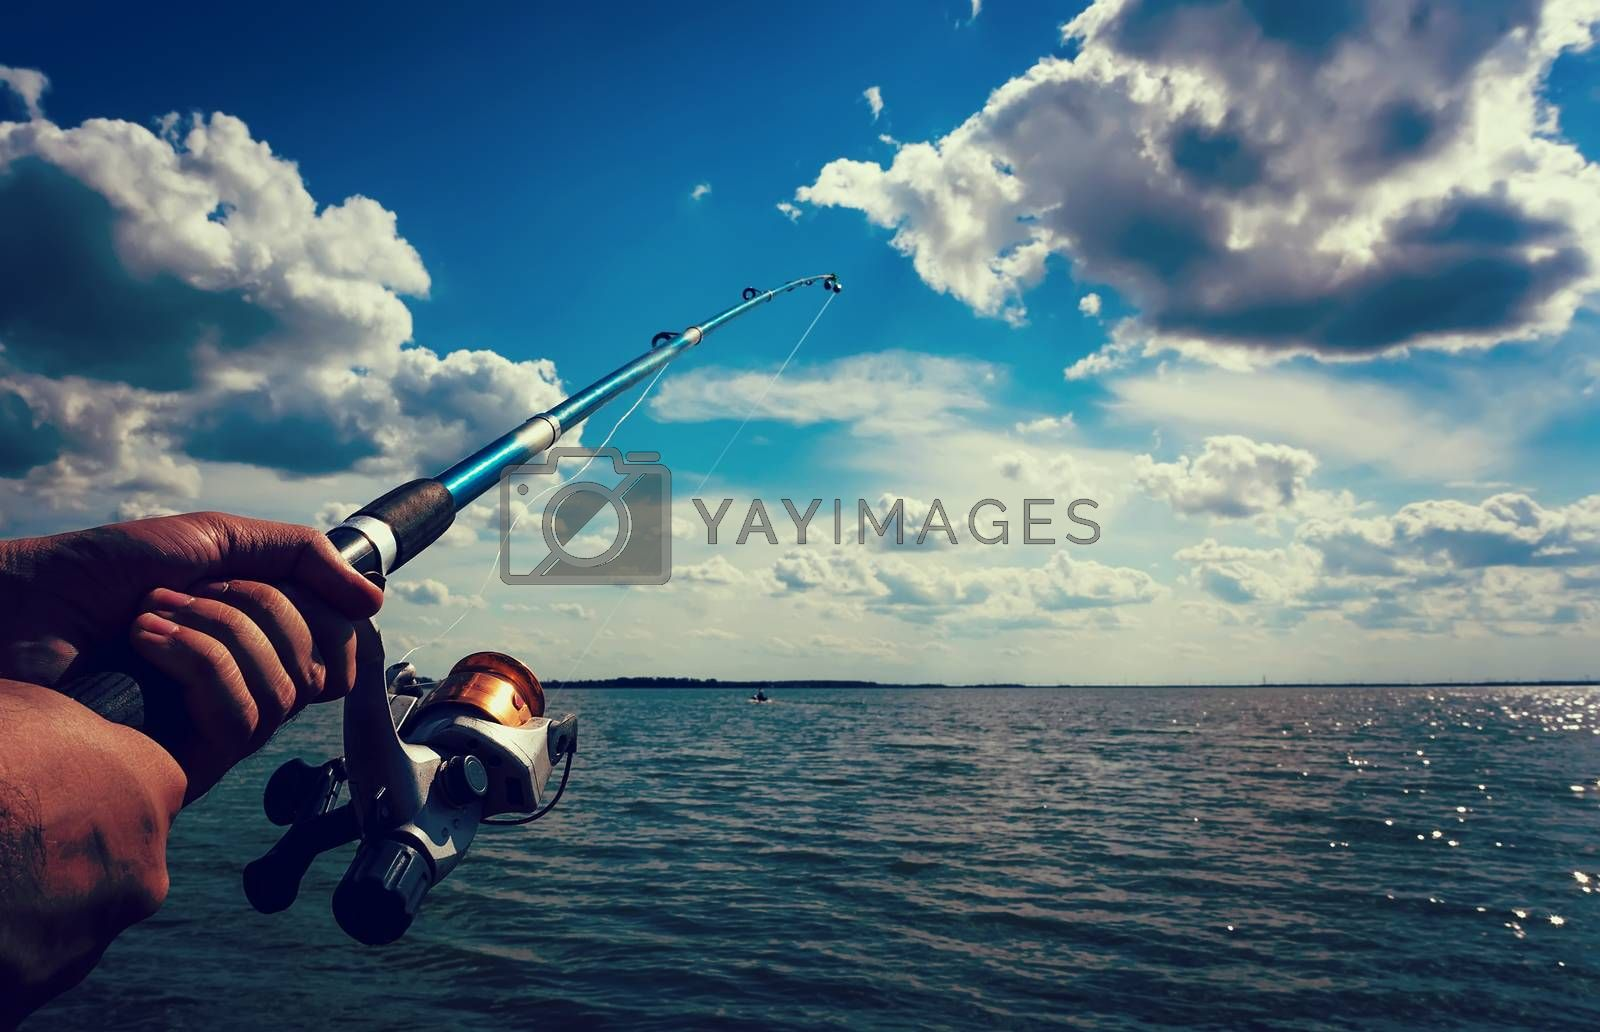 hand holding a fishing rod with reel. Focus on Fishing Reels. Toned image